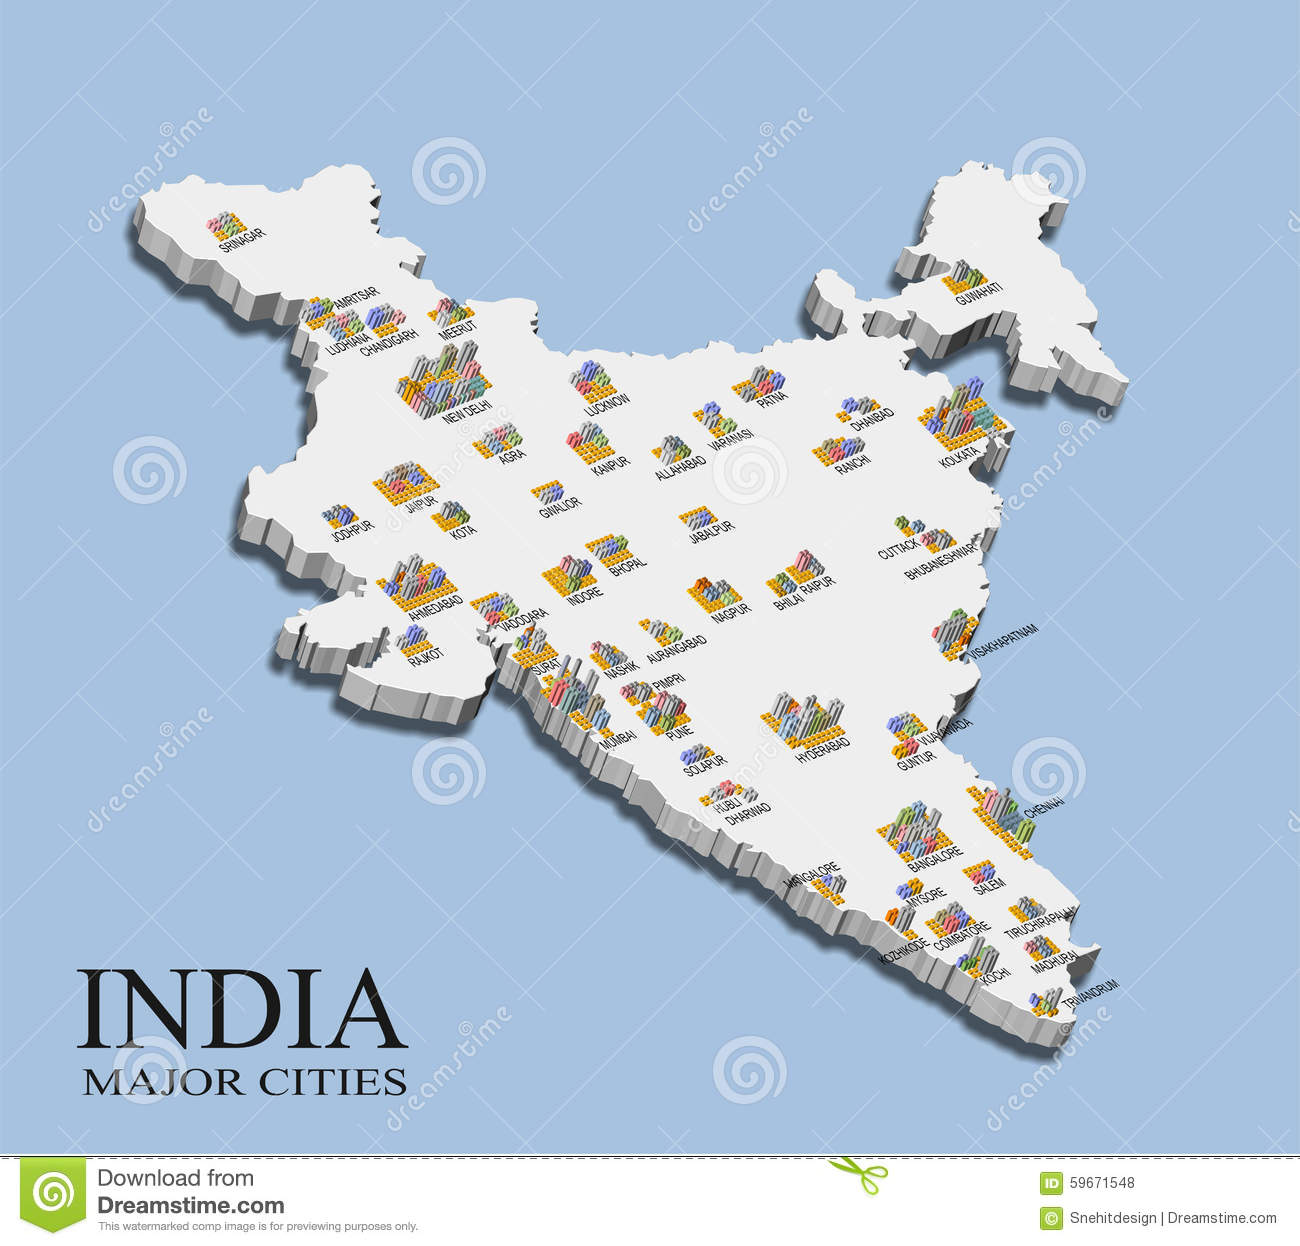 An Illustration Of India Map With Major City Population Shown In Bars